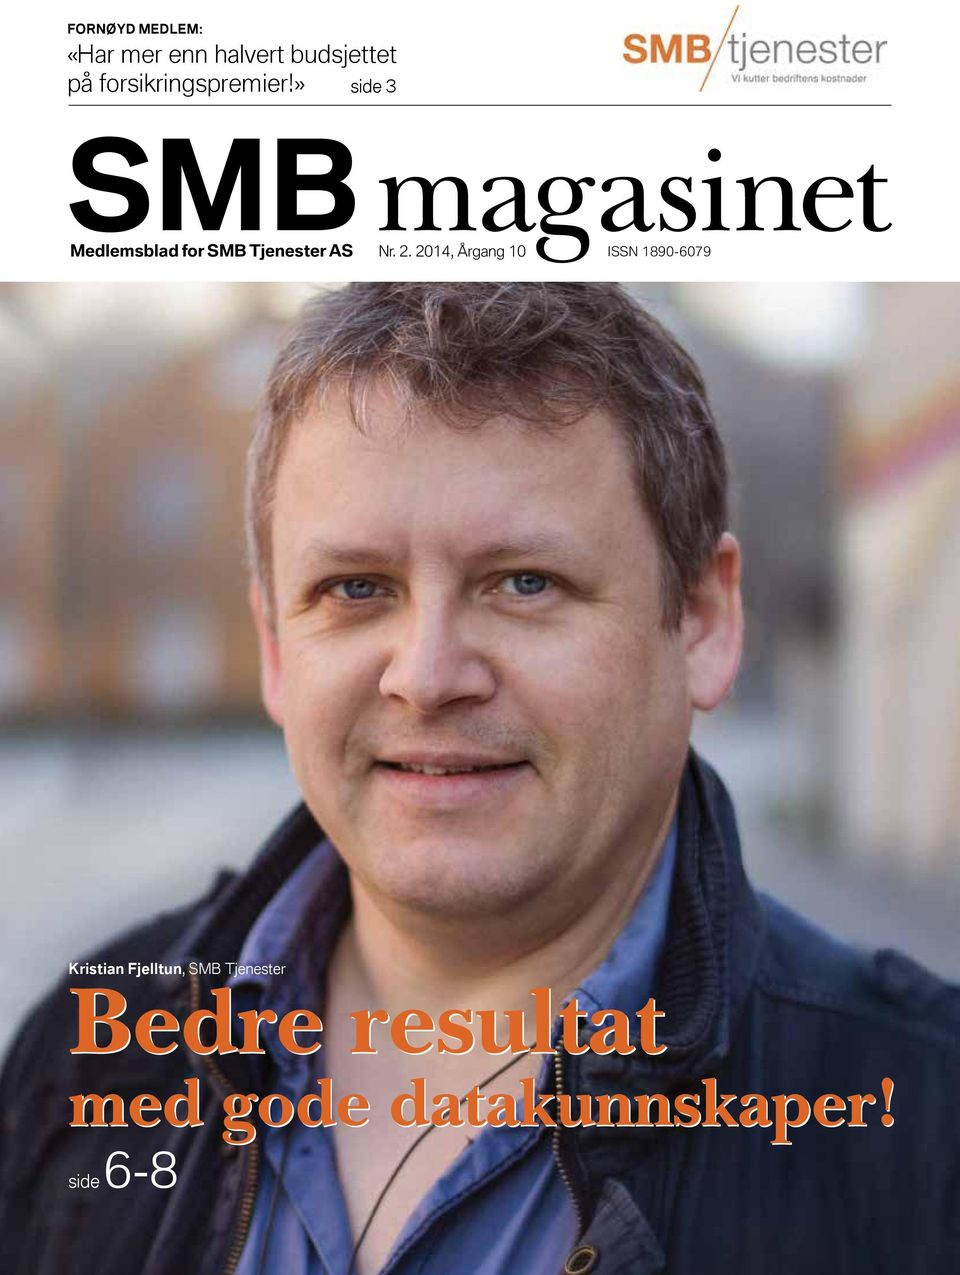 2014, Årgang 10 ISSN 1890-6079 B MB Medlemsblad ASB magasinet or SMB Tjenester for SMB